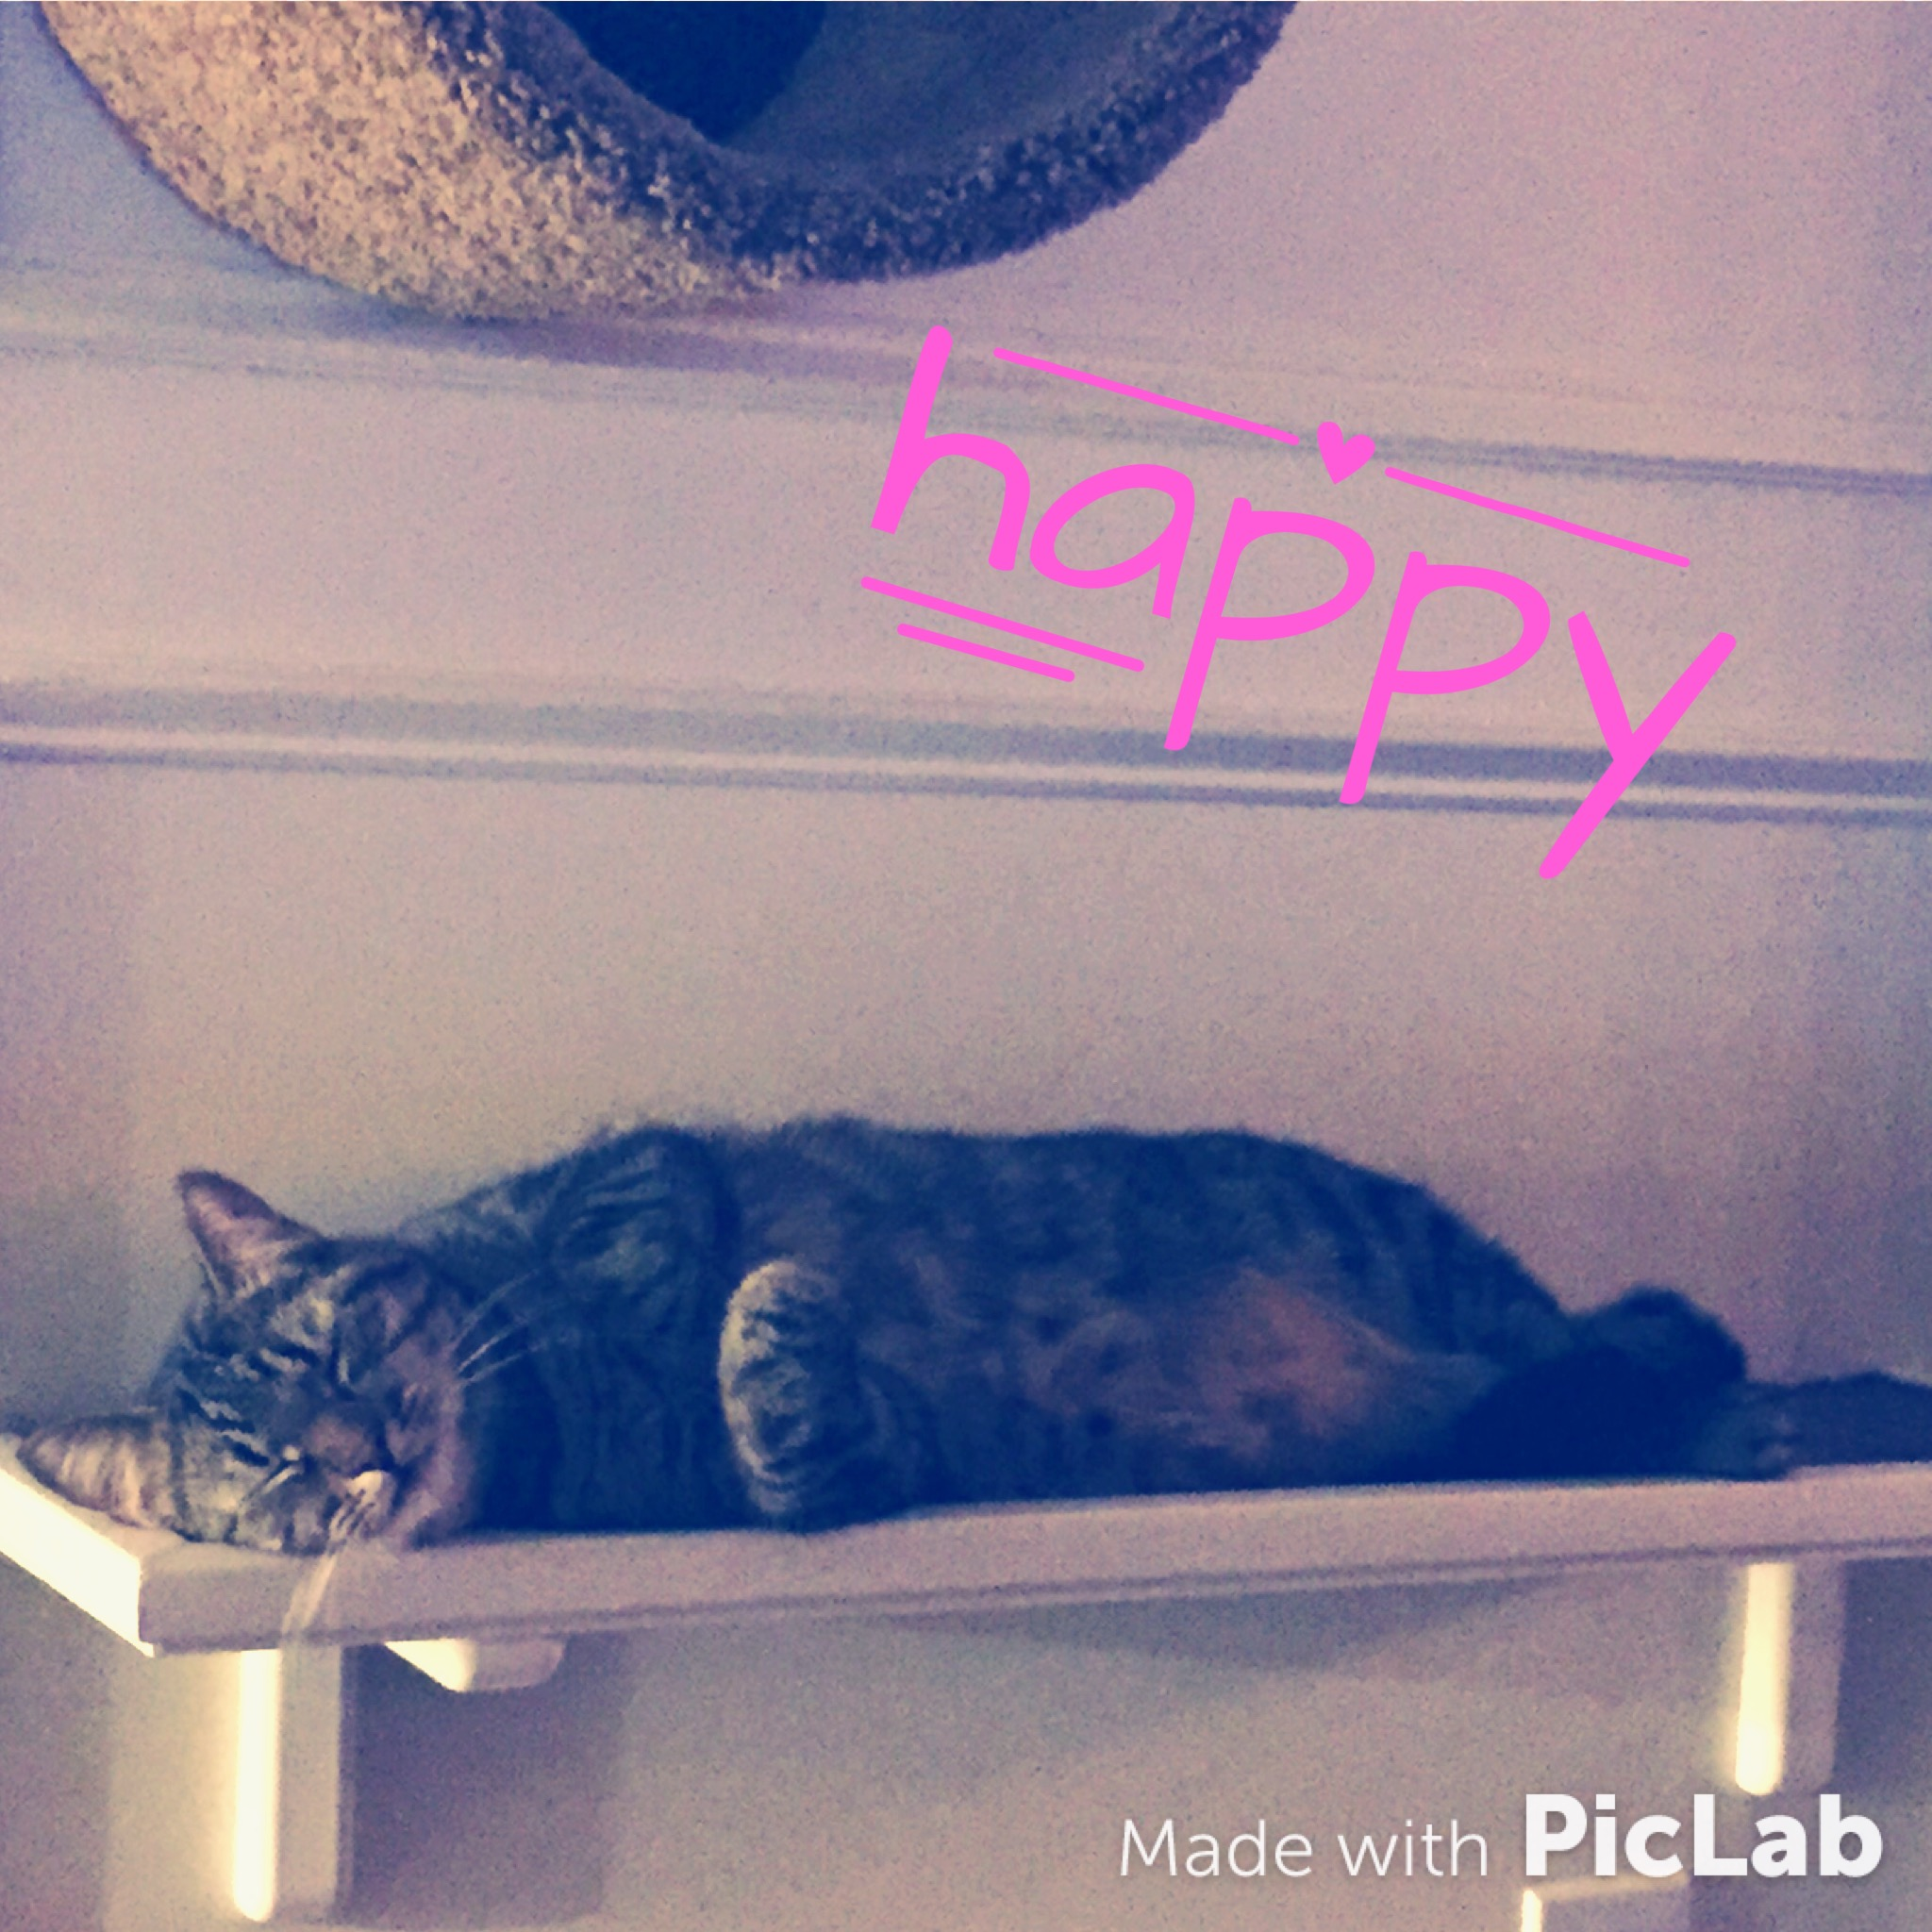 Guardian submitted photos of happy felines.